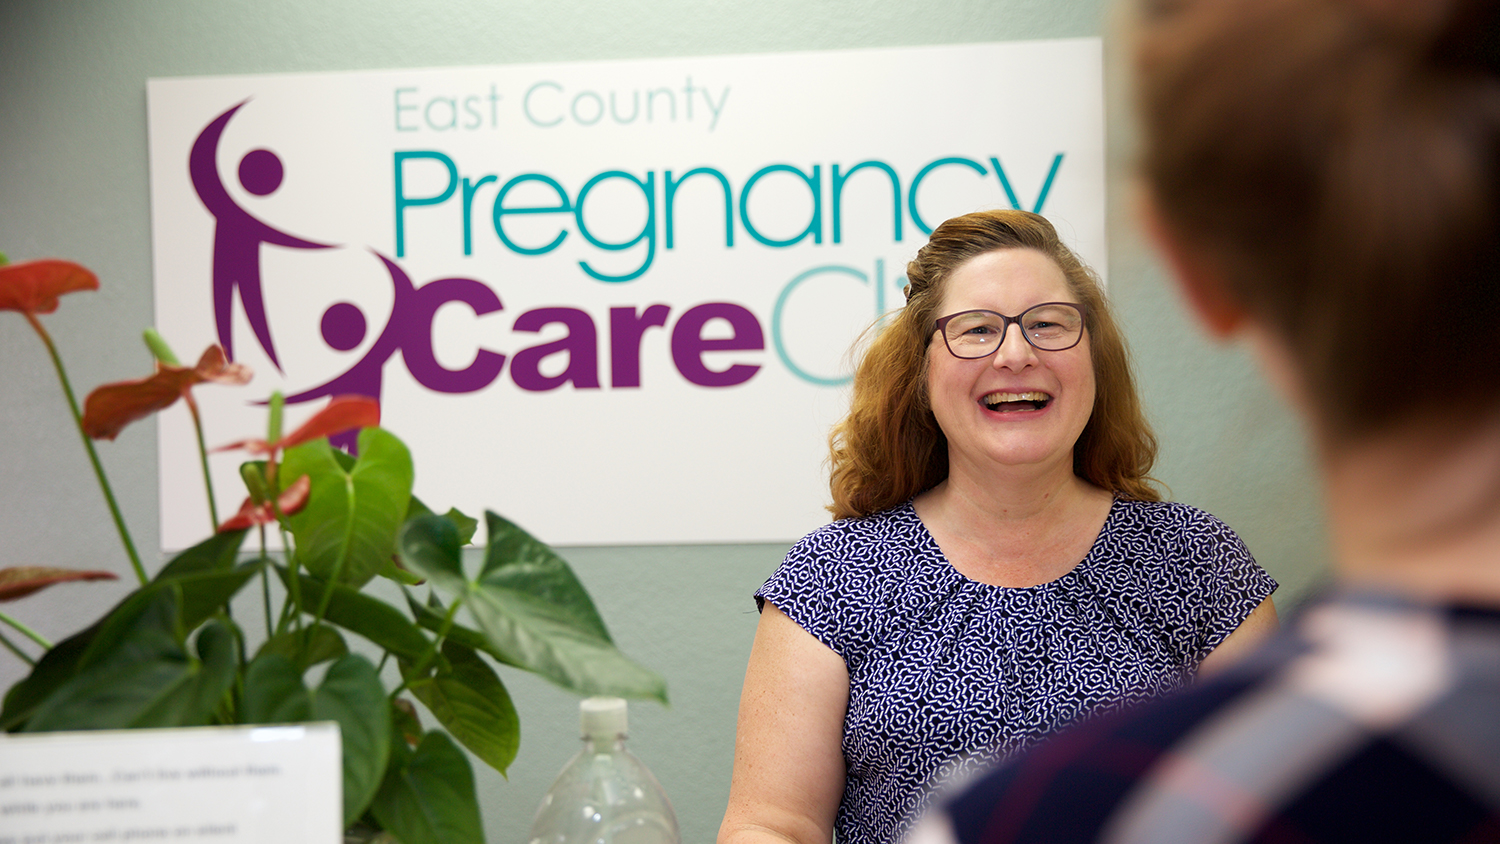 pregnancycareclinic-blog-021418